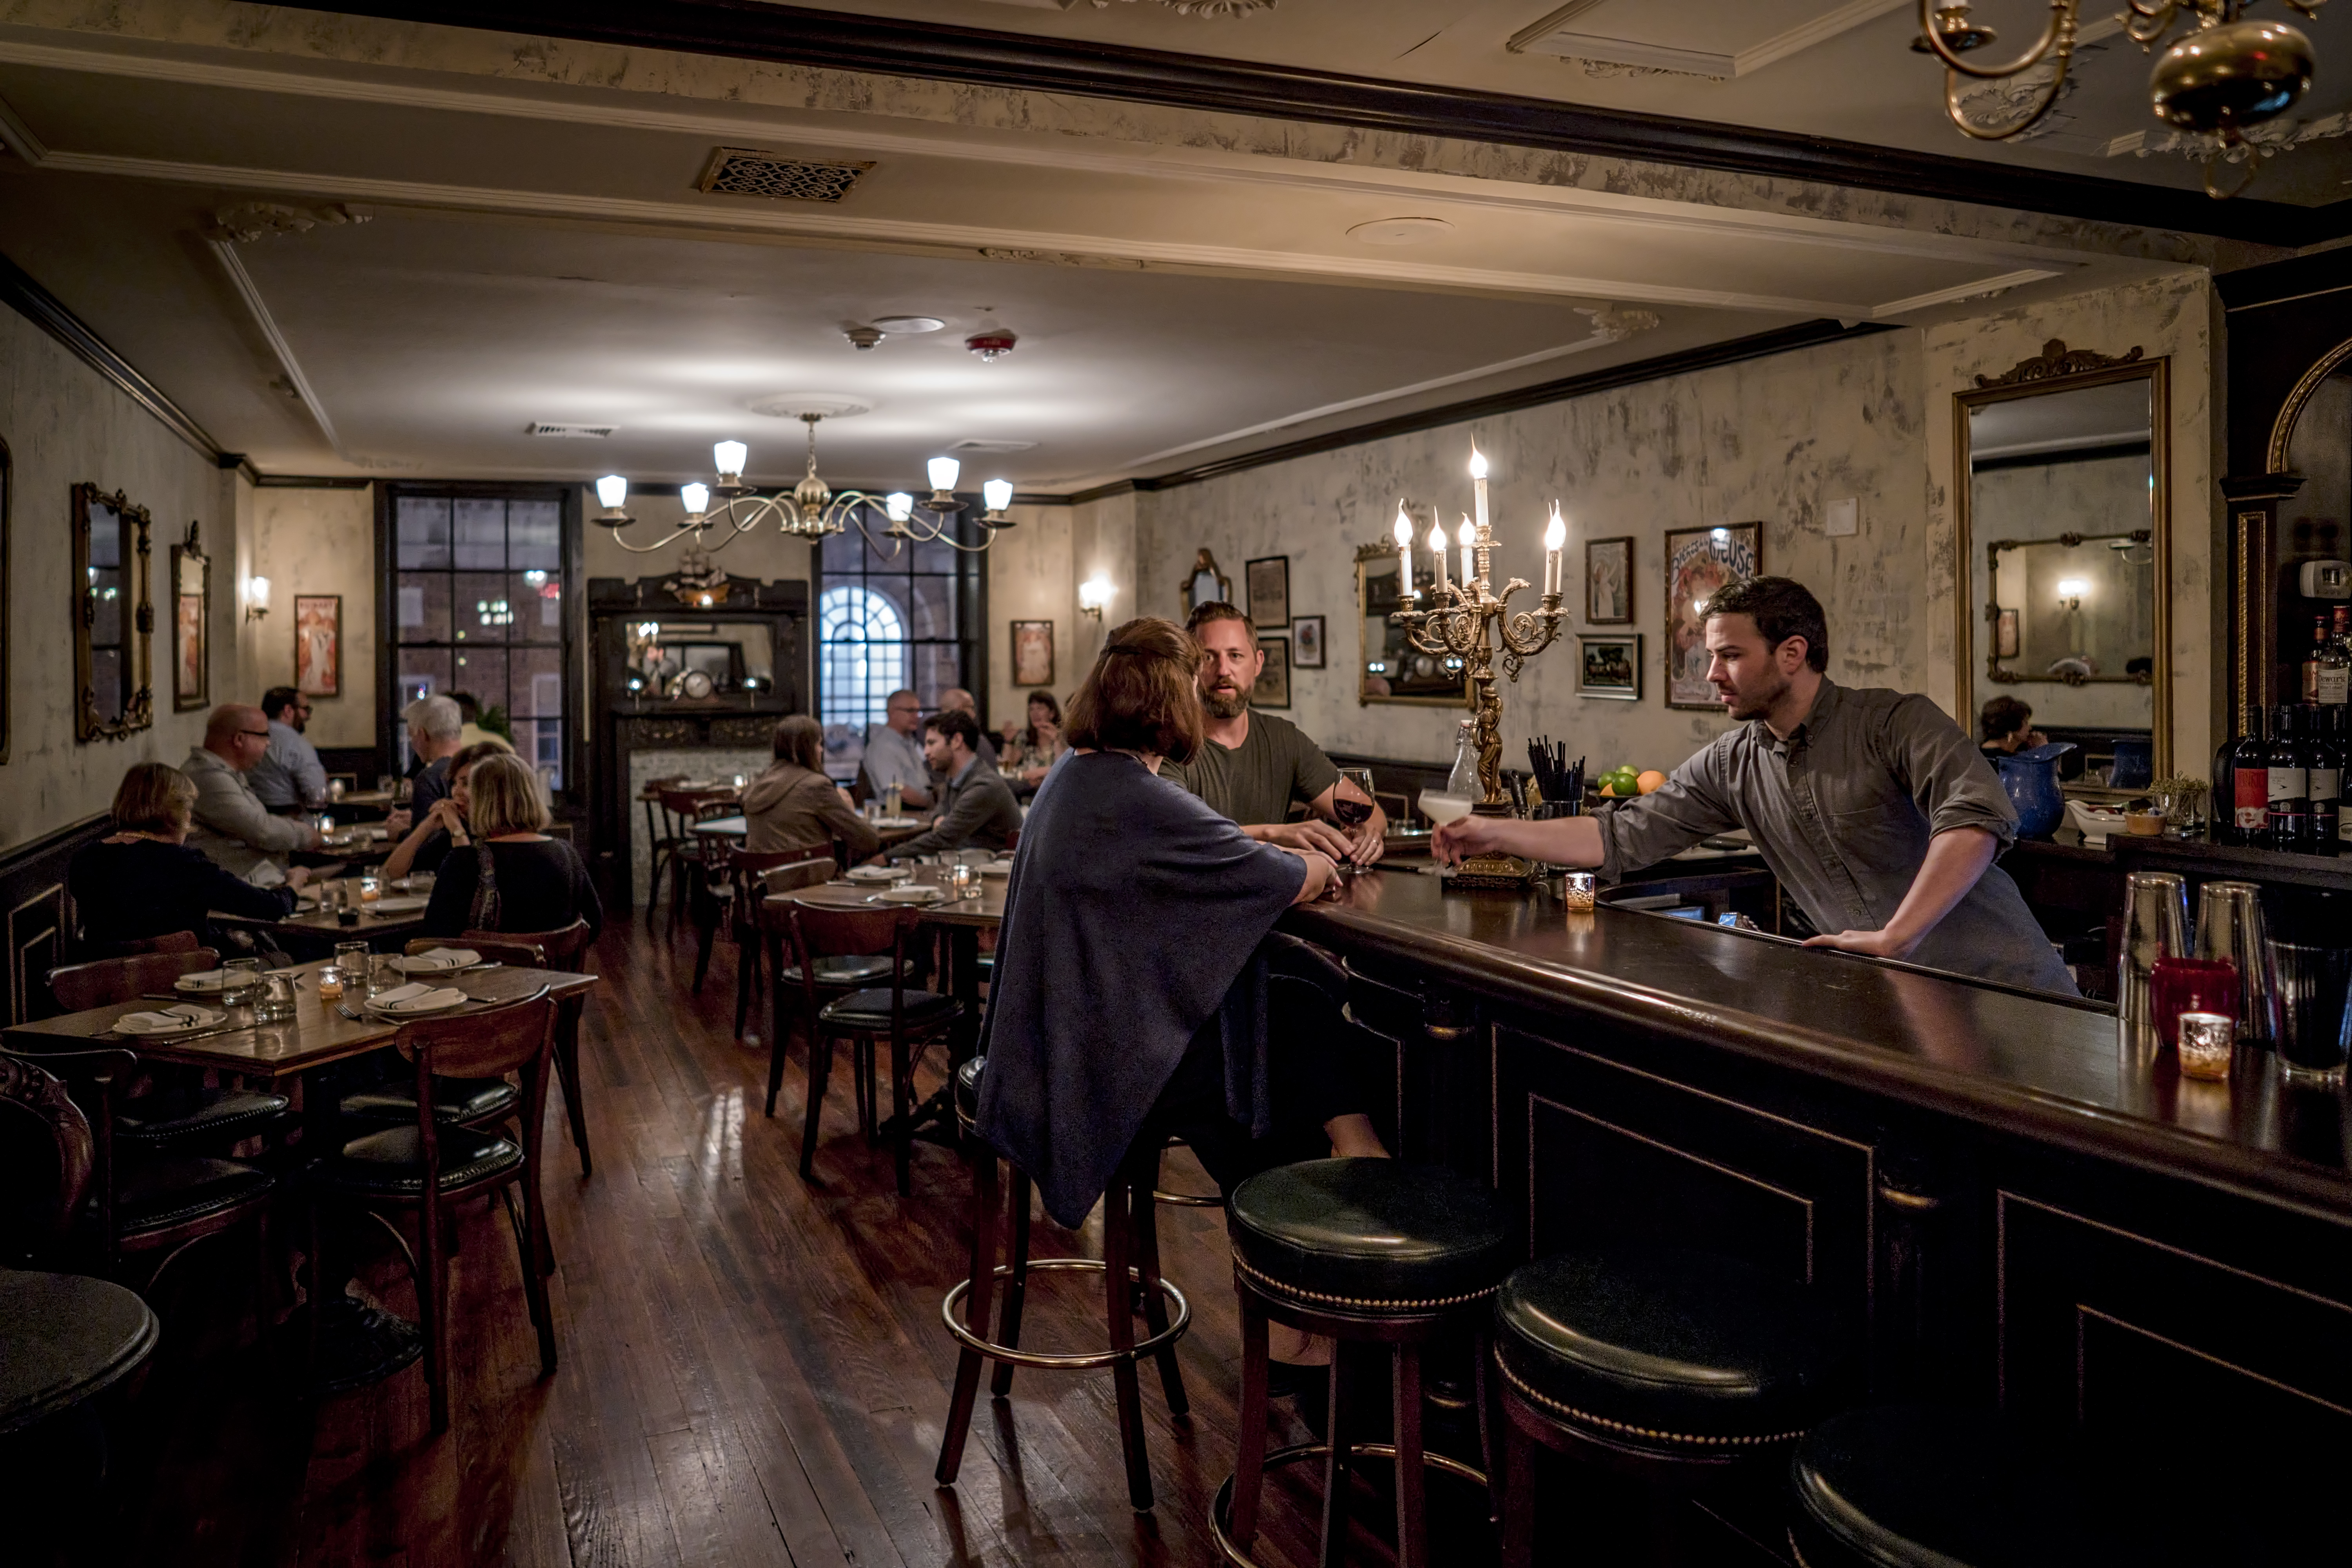 Old City´s Royal Boucherie invites you to get down and dirty with a classic Philly citywide (shot and a beer) for $6 or enjoy one of two $10 cocktail specials this Wednesday night.